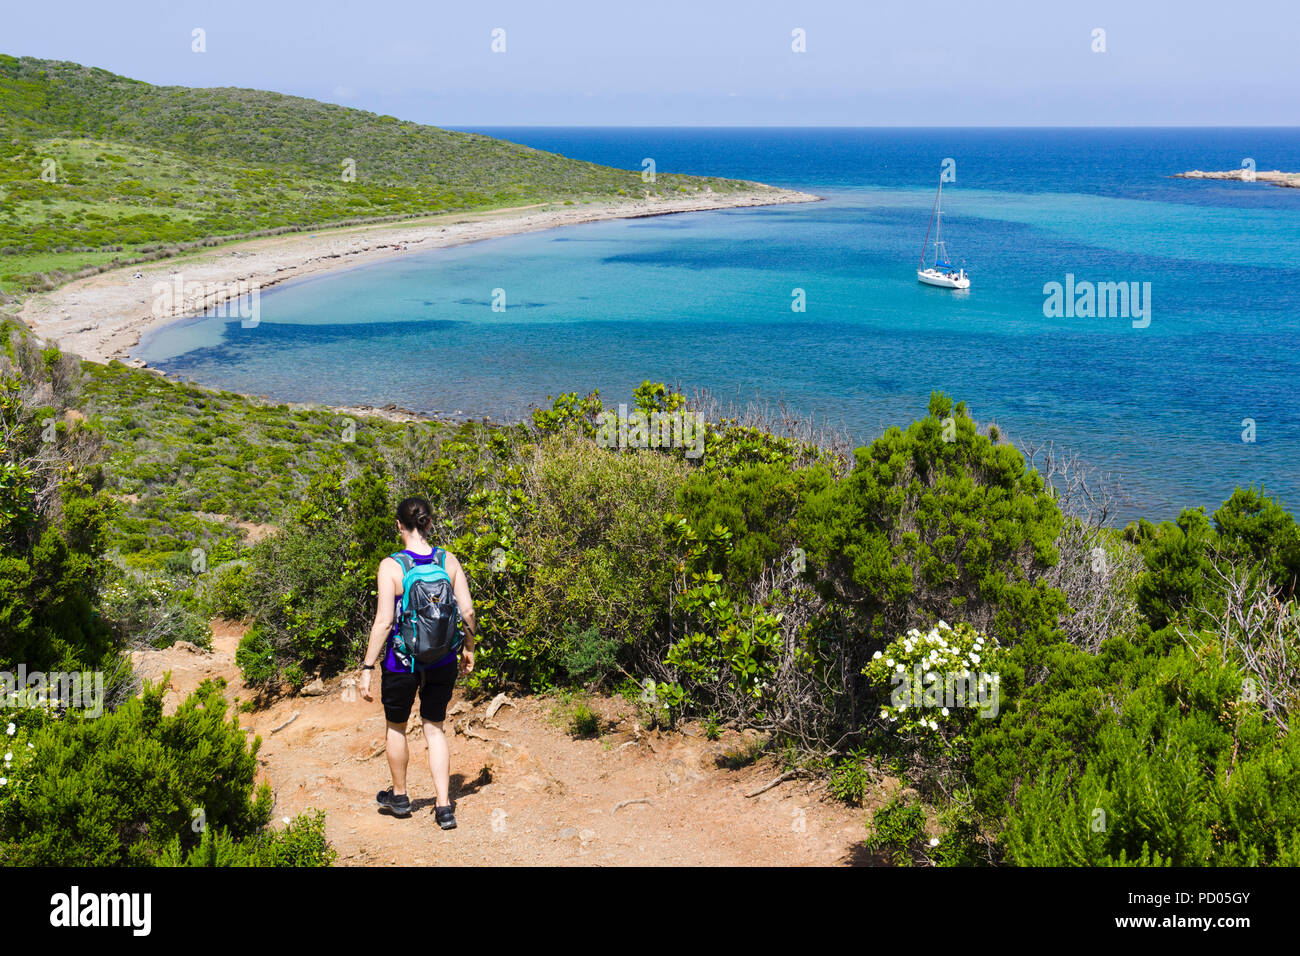 Sentier des douaniers, hiking trail, Cap Corse, Corsica, France Stock Photo